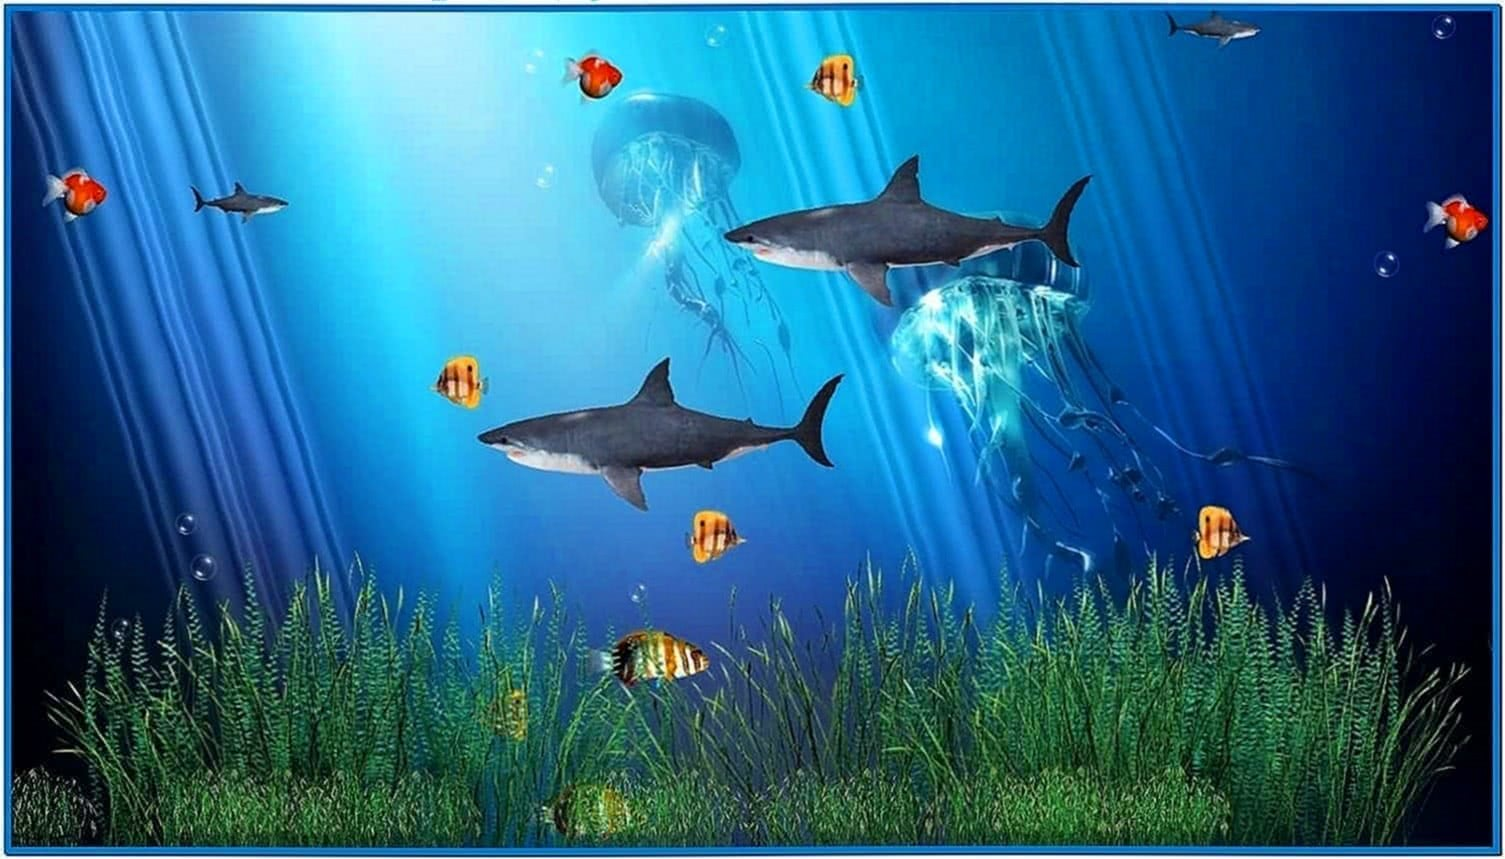 Coral Reef 3D Screensaver and Animated Wallpaper